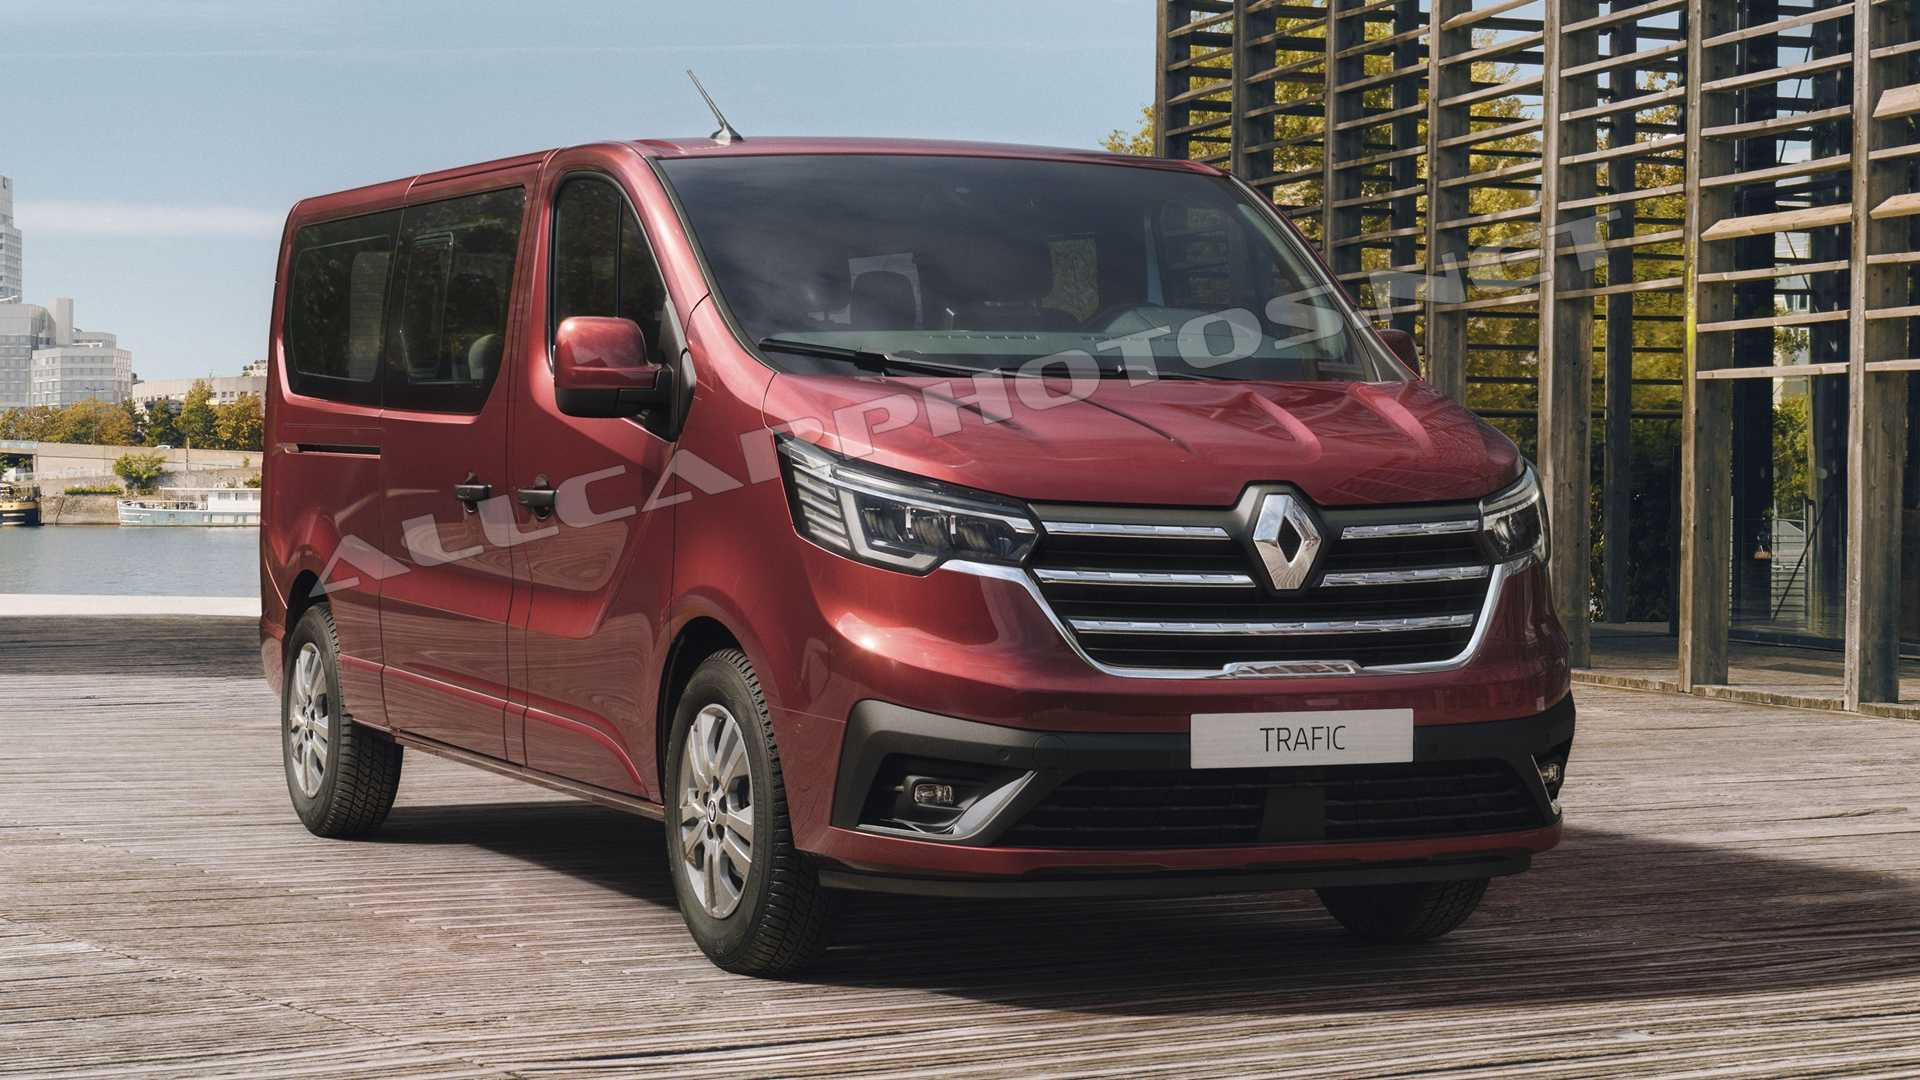 Foto di Renault Trafic 2021: It was debuts with its renewed face